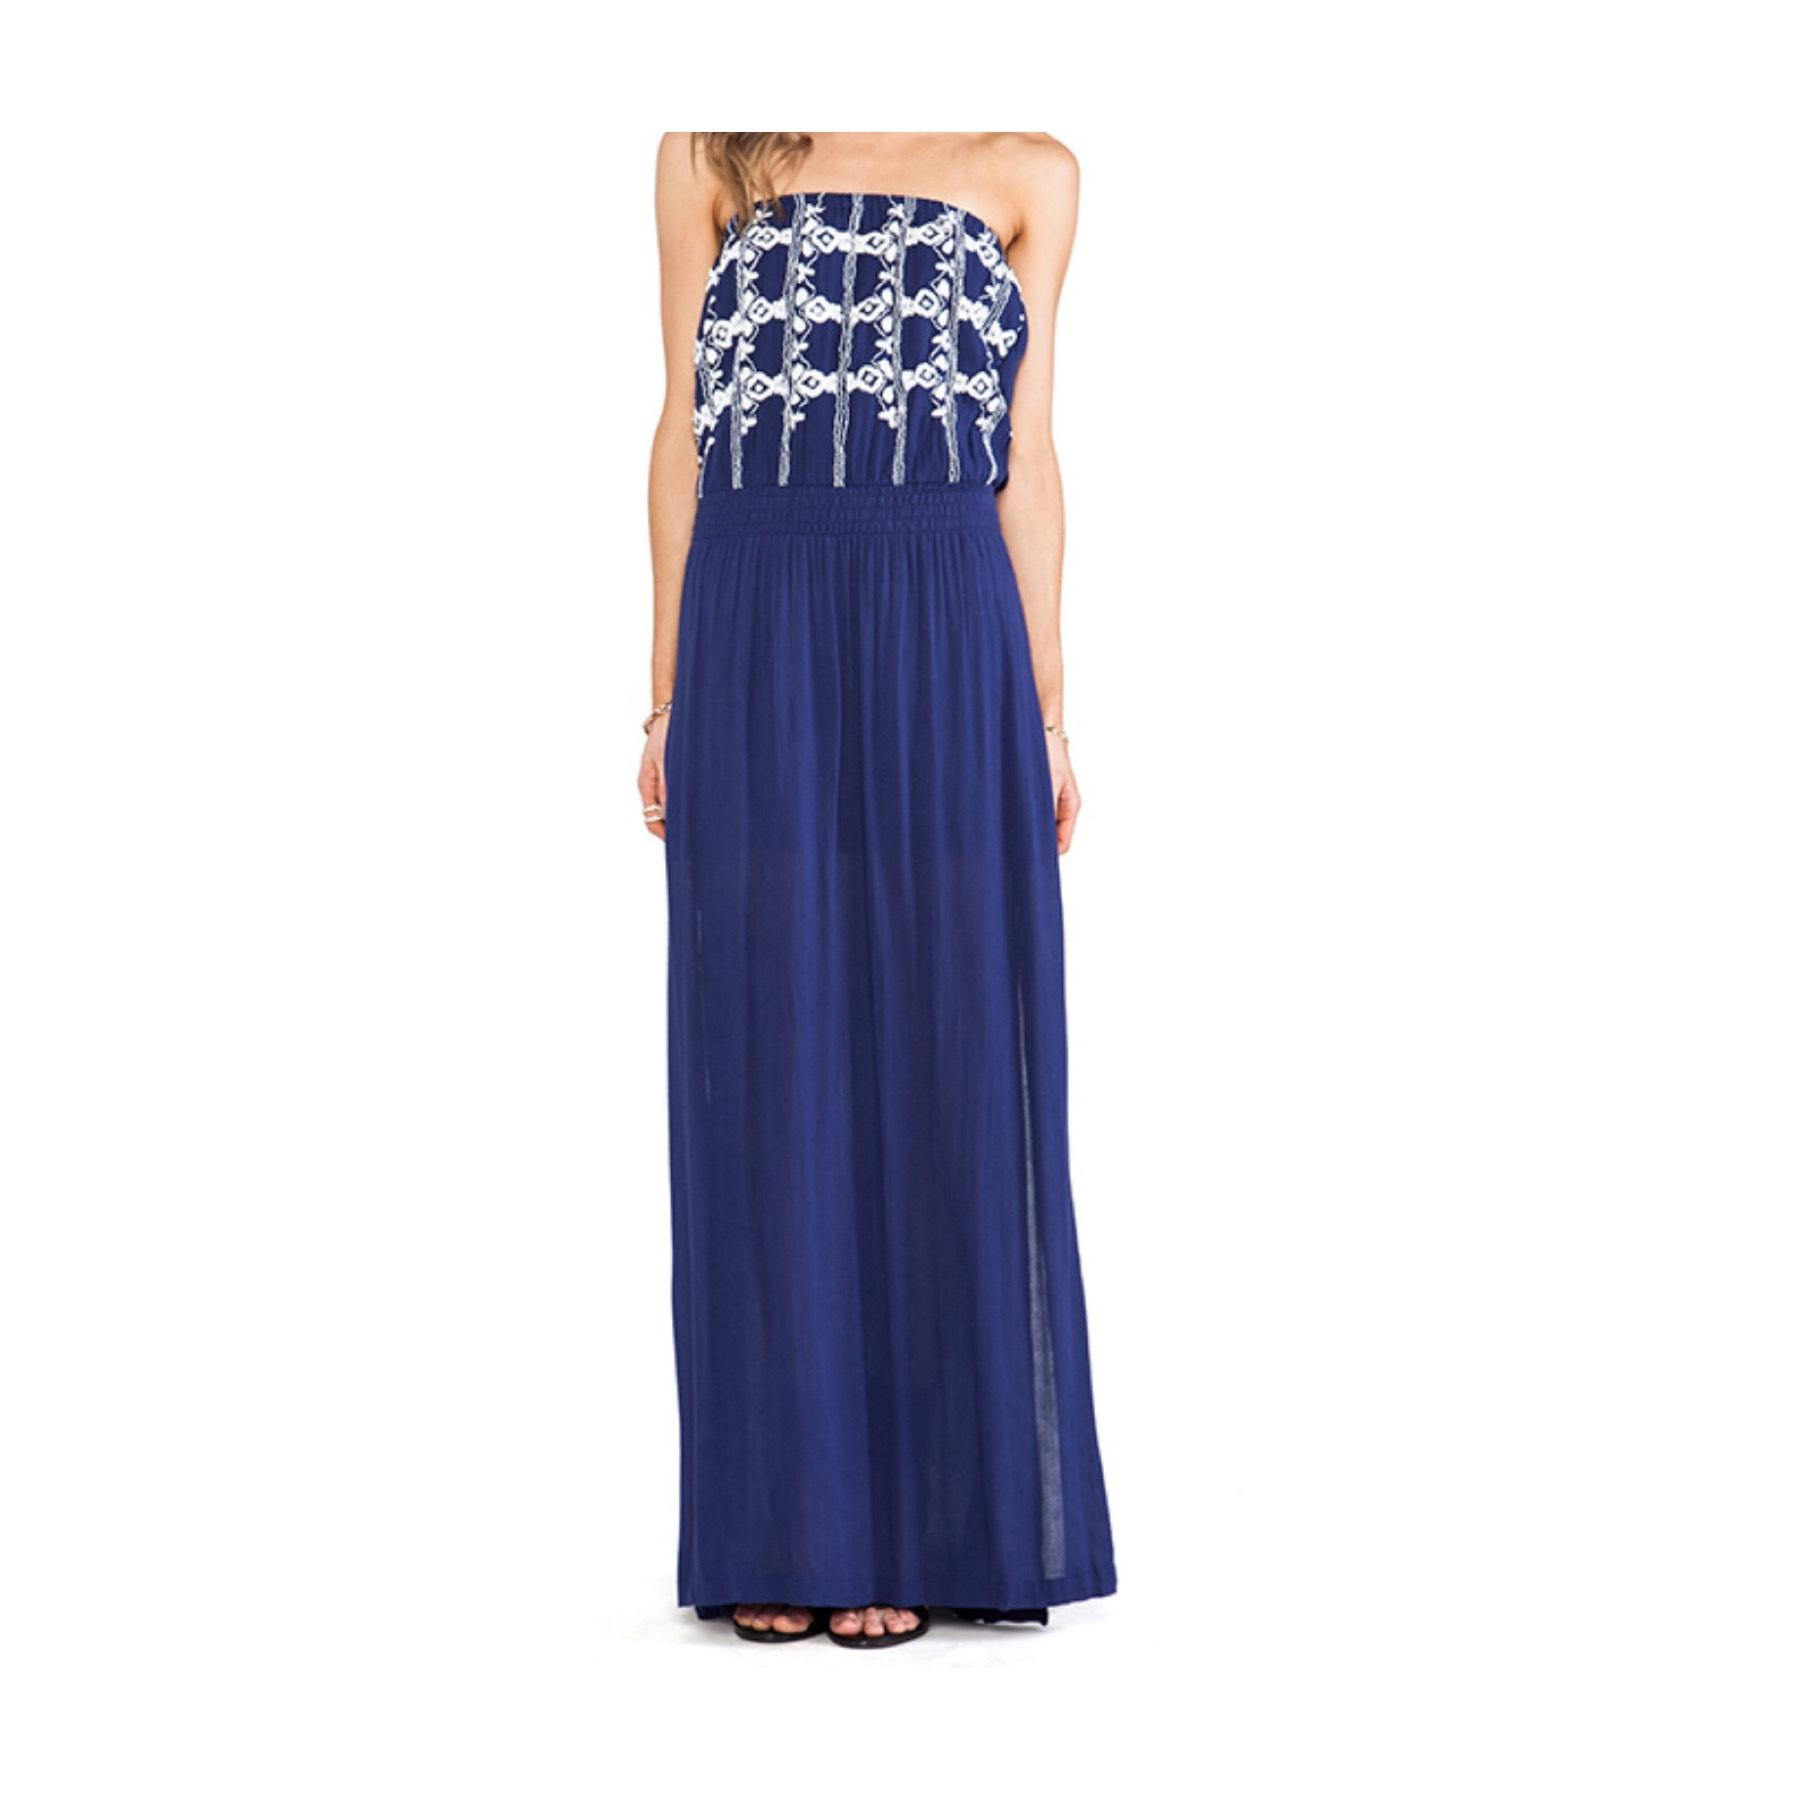 Lamade Navy Blue Embroidered Strapless Long Casual Maxi